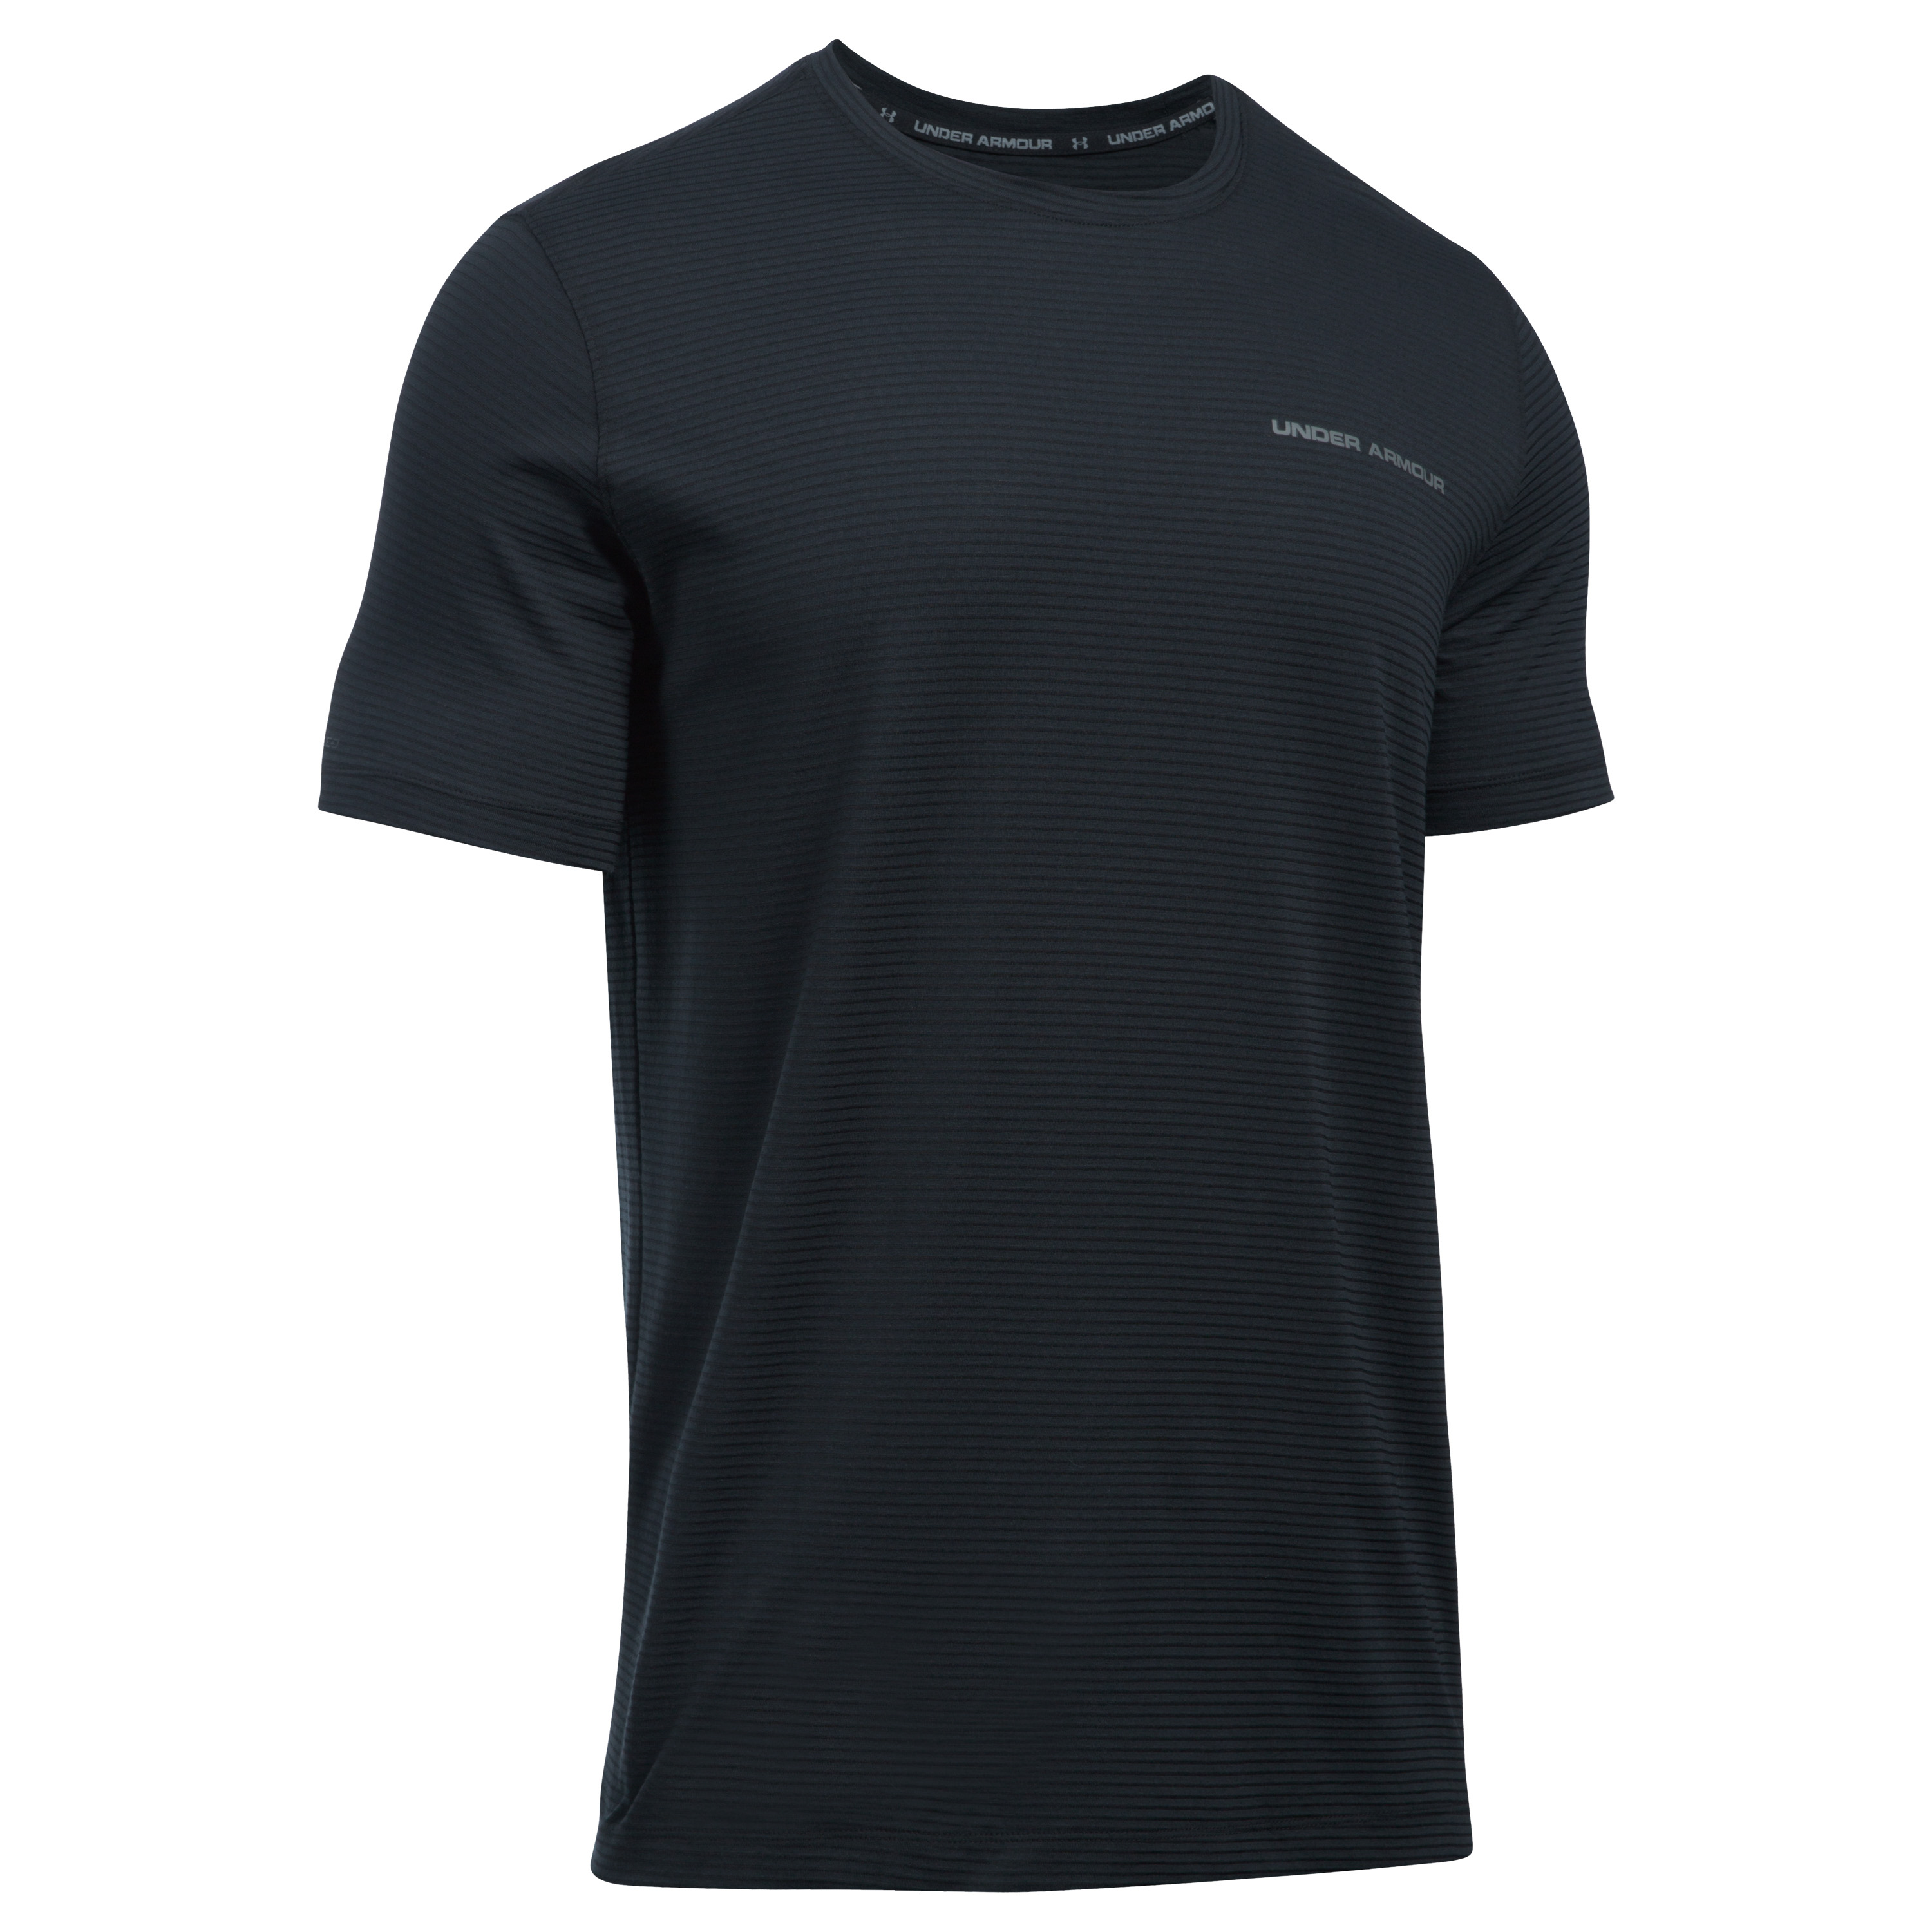 Under Armour Fitness T-Shirt Charged Cotton schwarz graphit